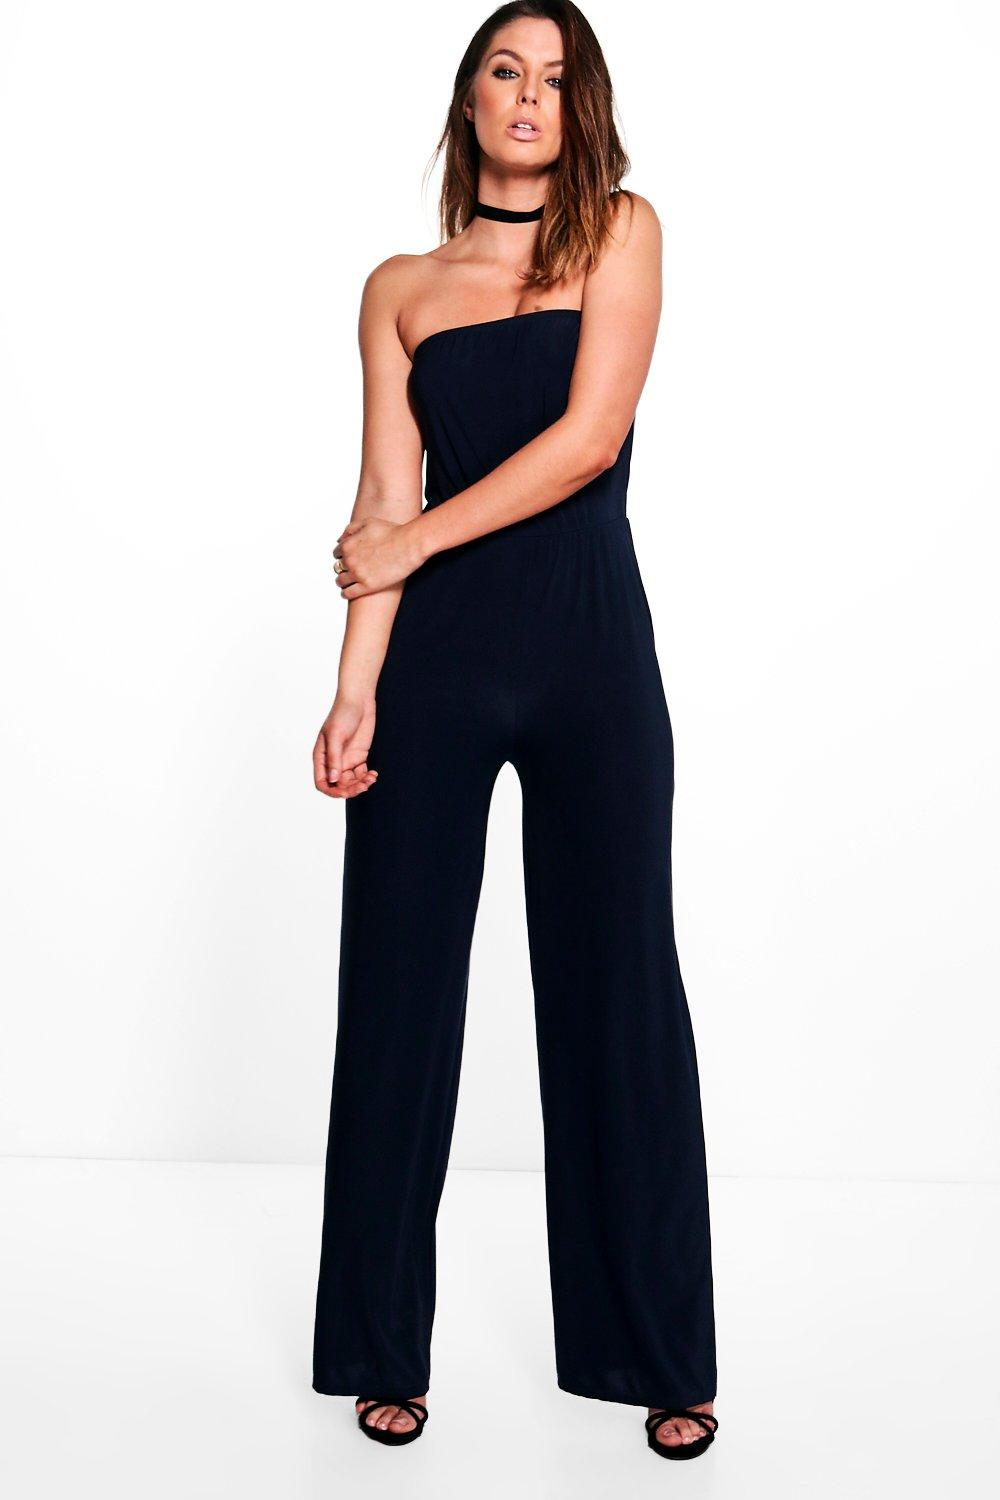 Wide Leg Jumpsuits. Styles Found. Your wardrobe is screaming for you to step up your jumpsuit game. Be prepared, a wide leg jumpsuit is the new 'IT' piece to have in your closet and we've collaborated the best of the best into one place in order for you to shop with ease. From cool culotte styles you can dress up or down creating chic.